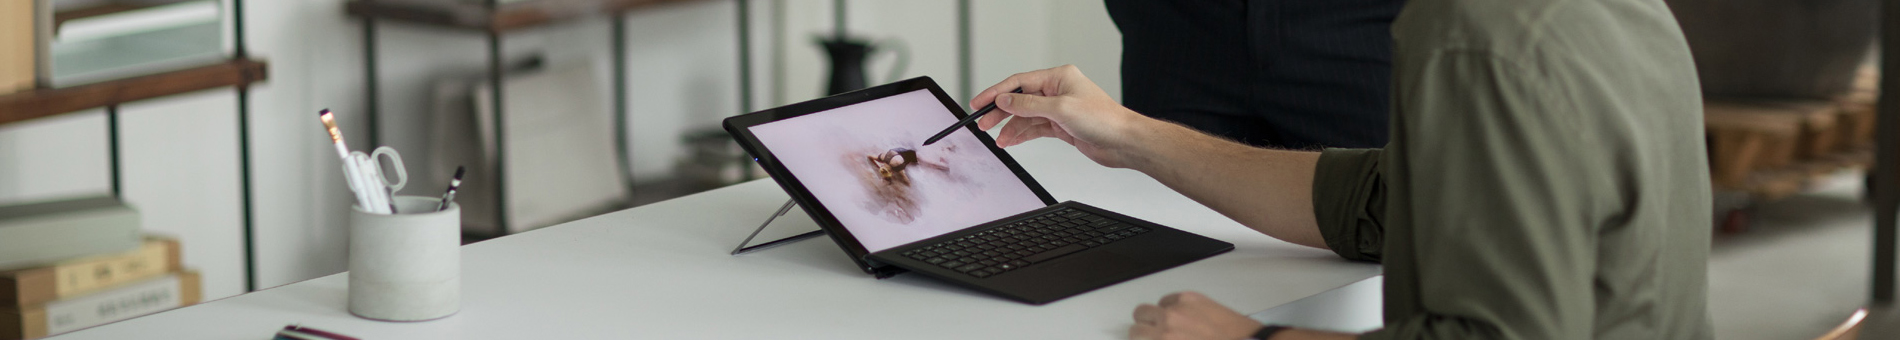 Acer Store Notebooks Switch Tile1